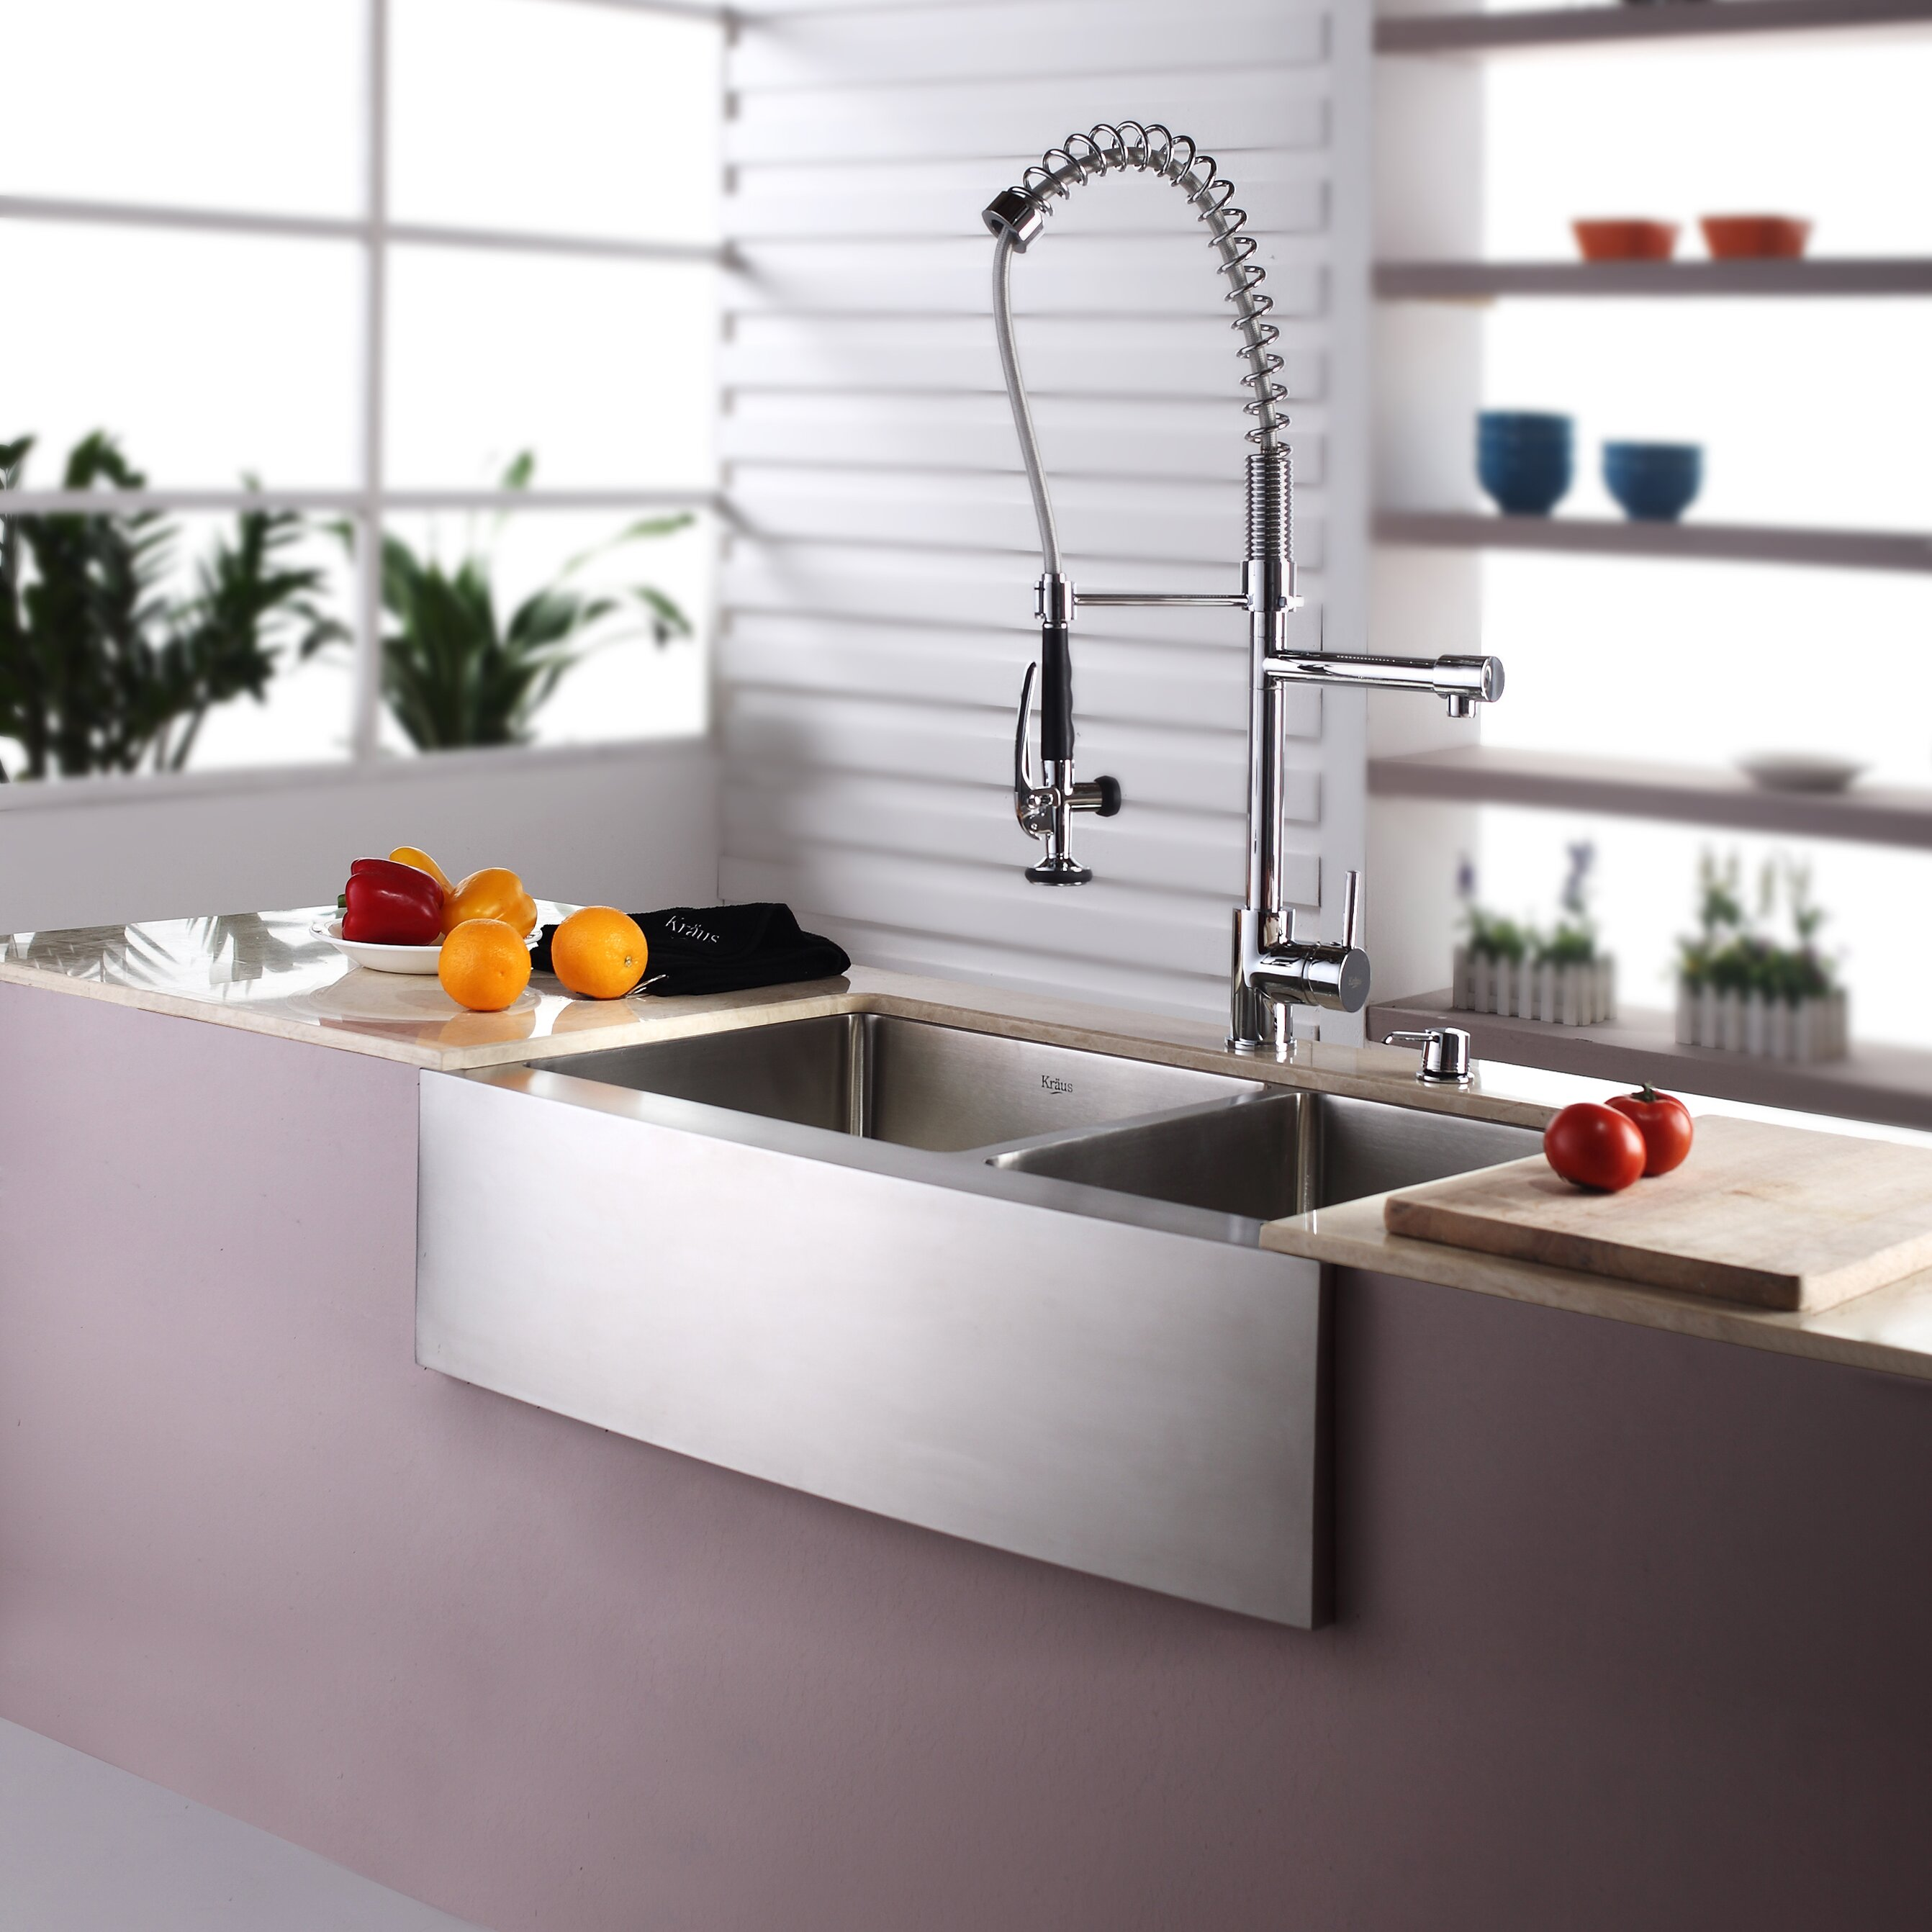 20 Farmhouse Sink : 32.9